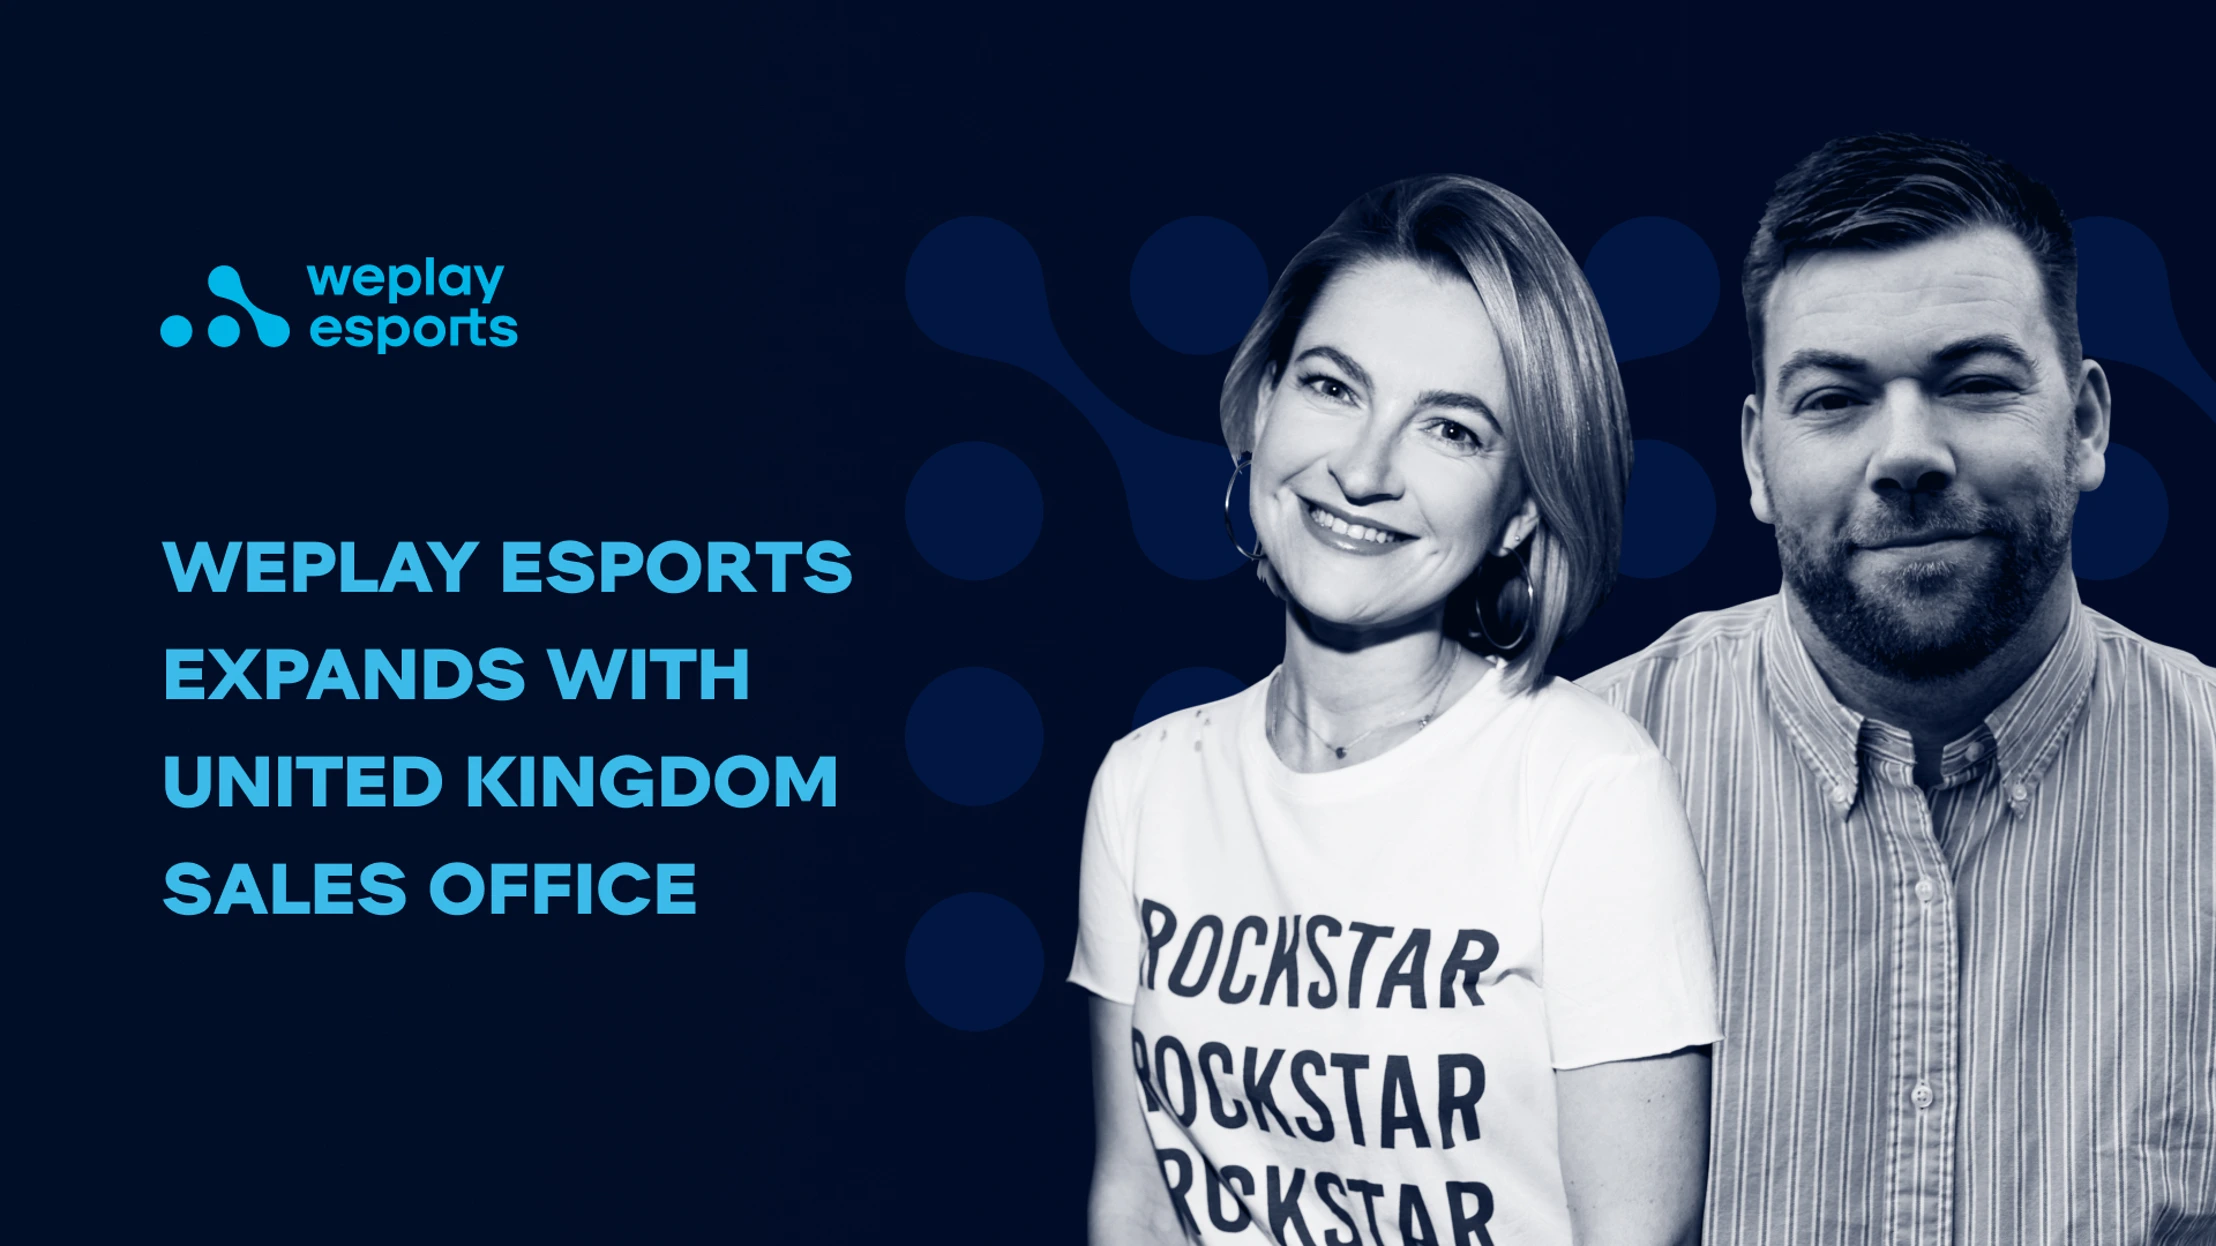 WePlay Esports expands with United Kingdom sales office